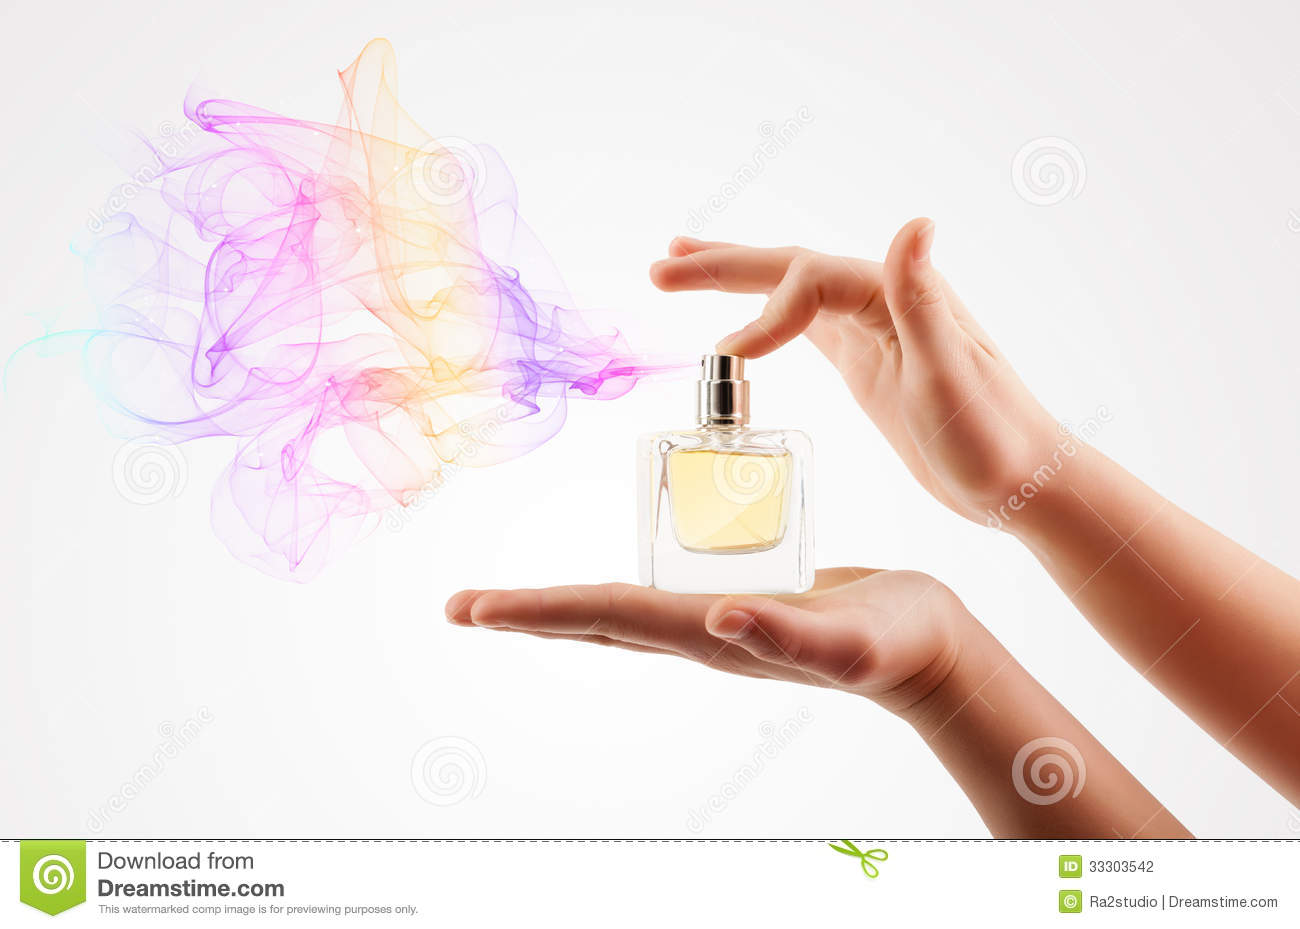 Spraying Stock Photos Images, Royalty Free Spraying Images And ...